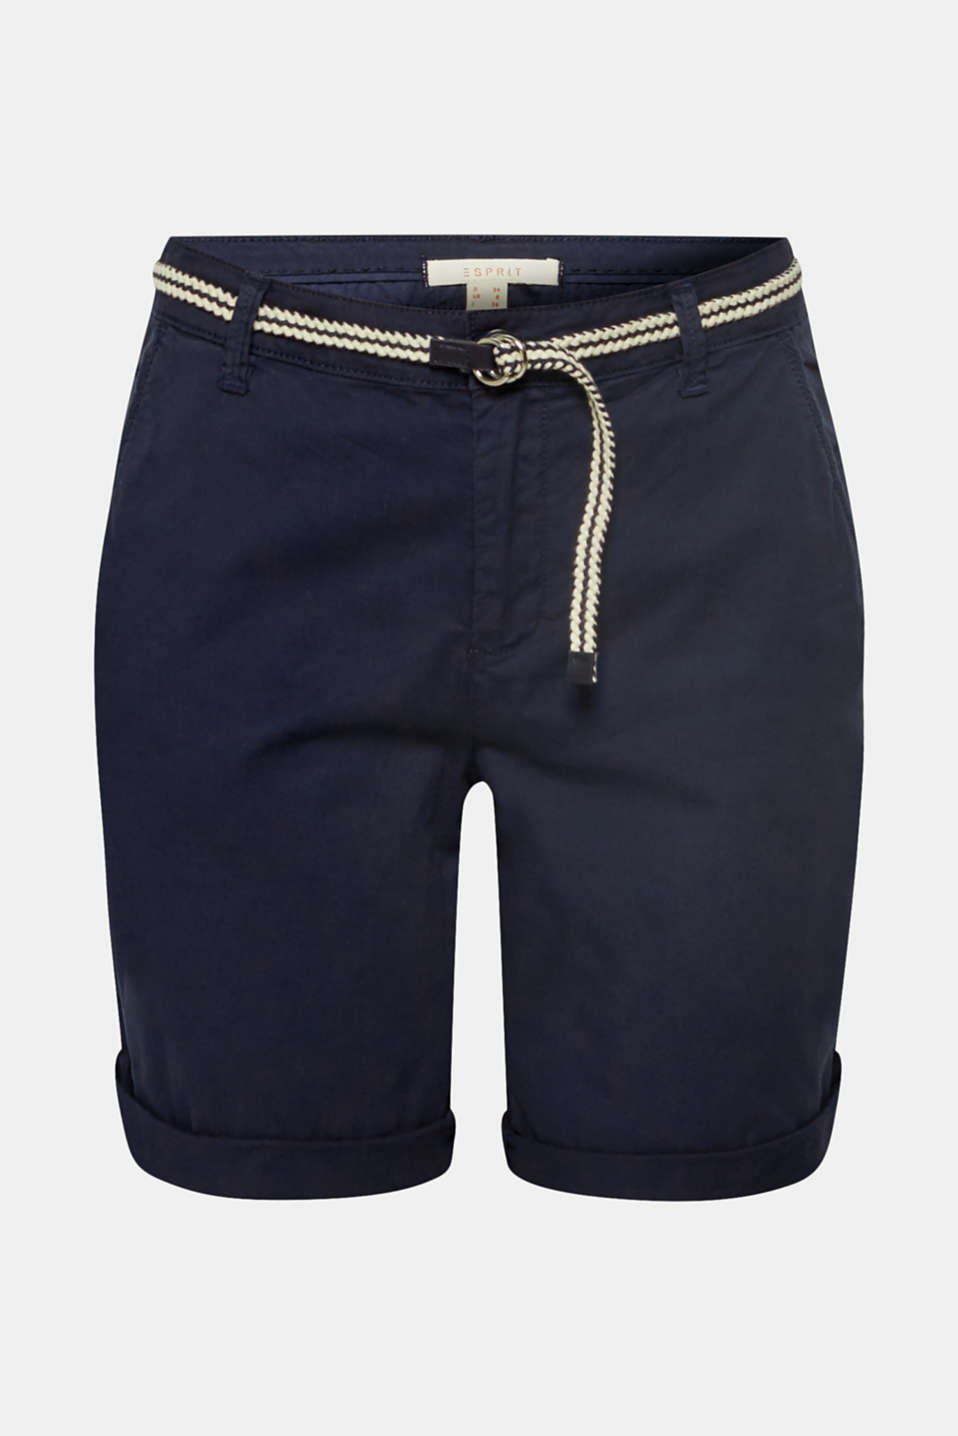 Stretch cotton Bermudas with a belt, NAVY, detail image number 7